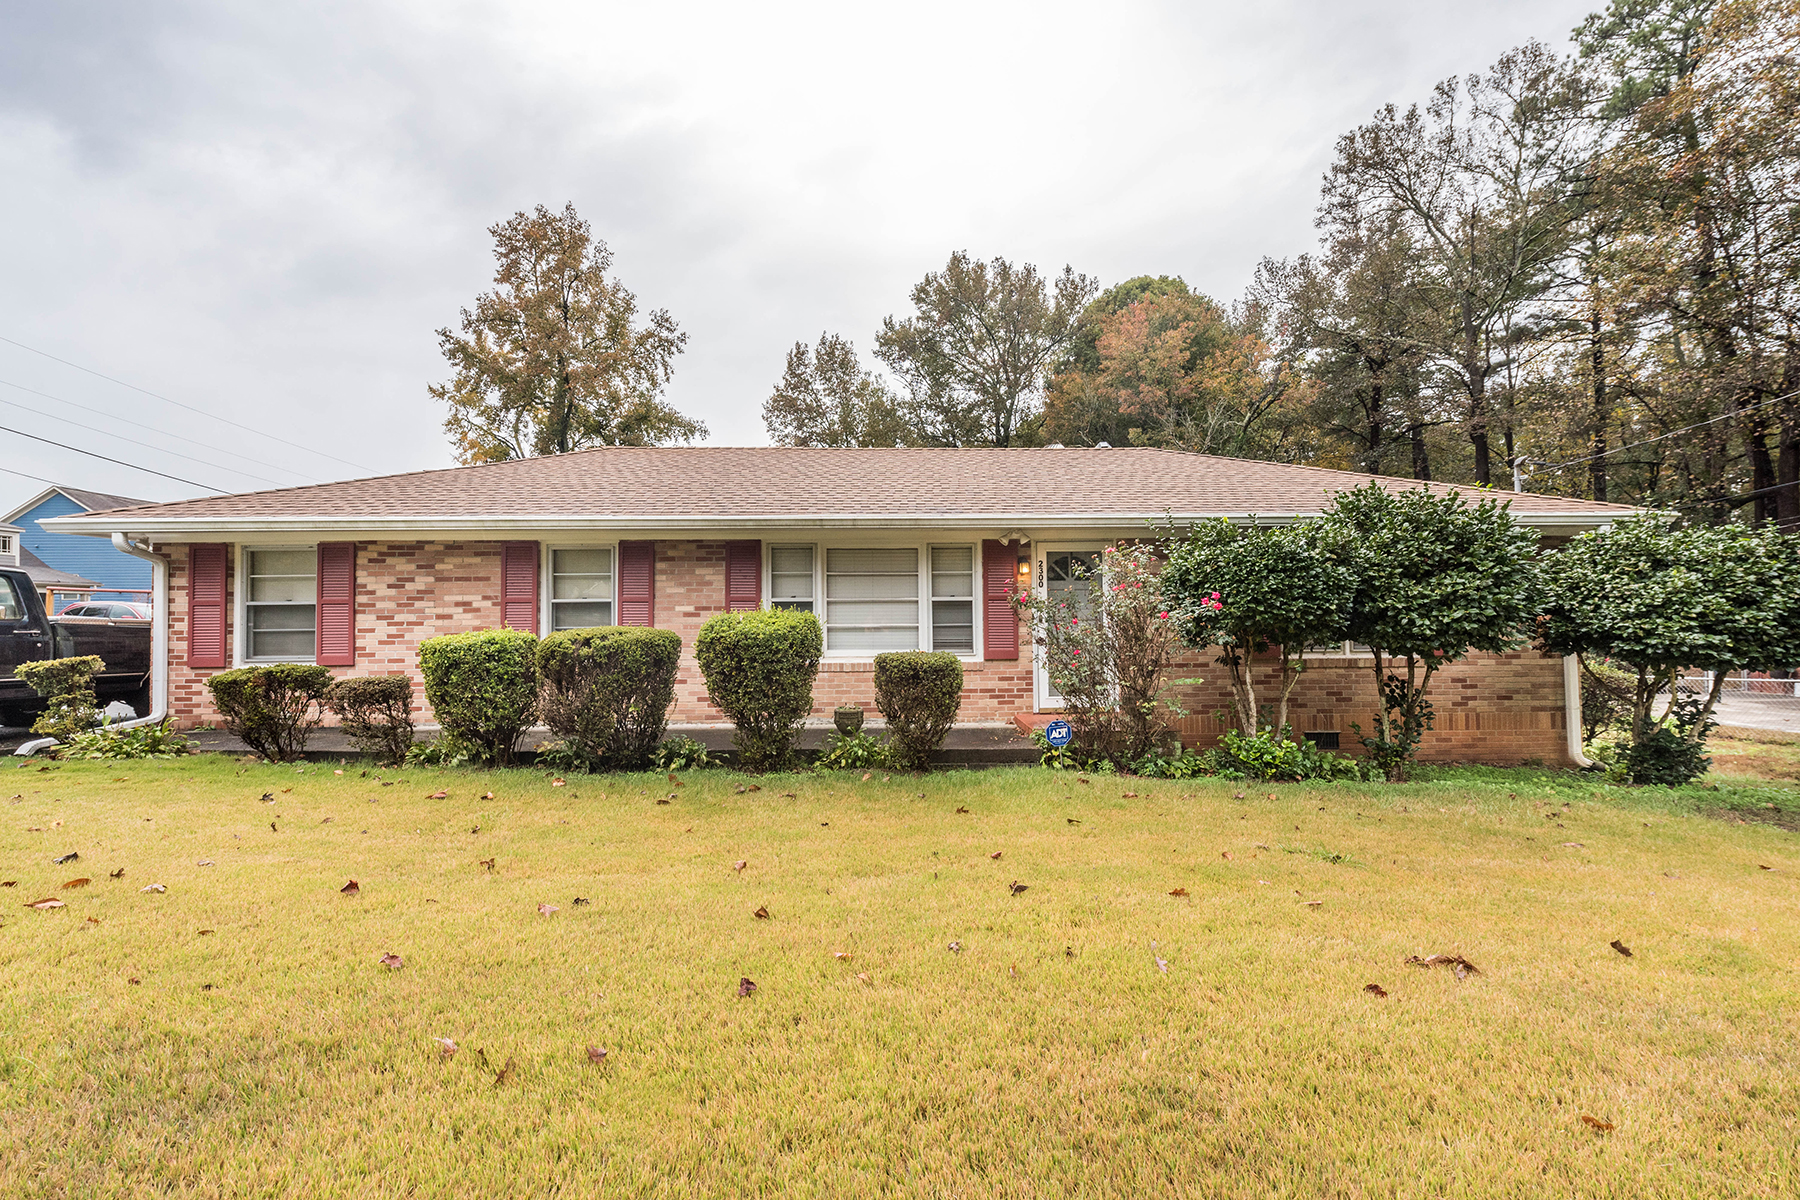 Single Family Home for Sale at Amazing Ranch in Smyrna 2300 Belmont Circle SE Smyrna, Georgia 30080 United States